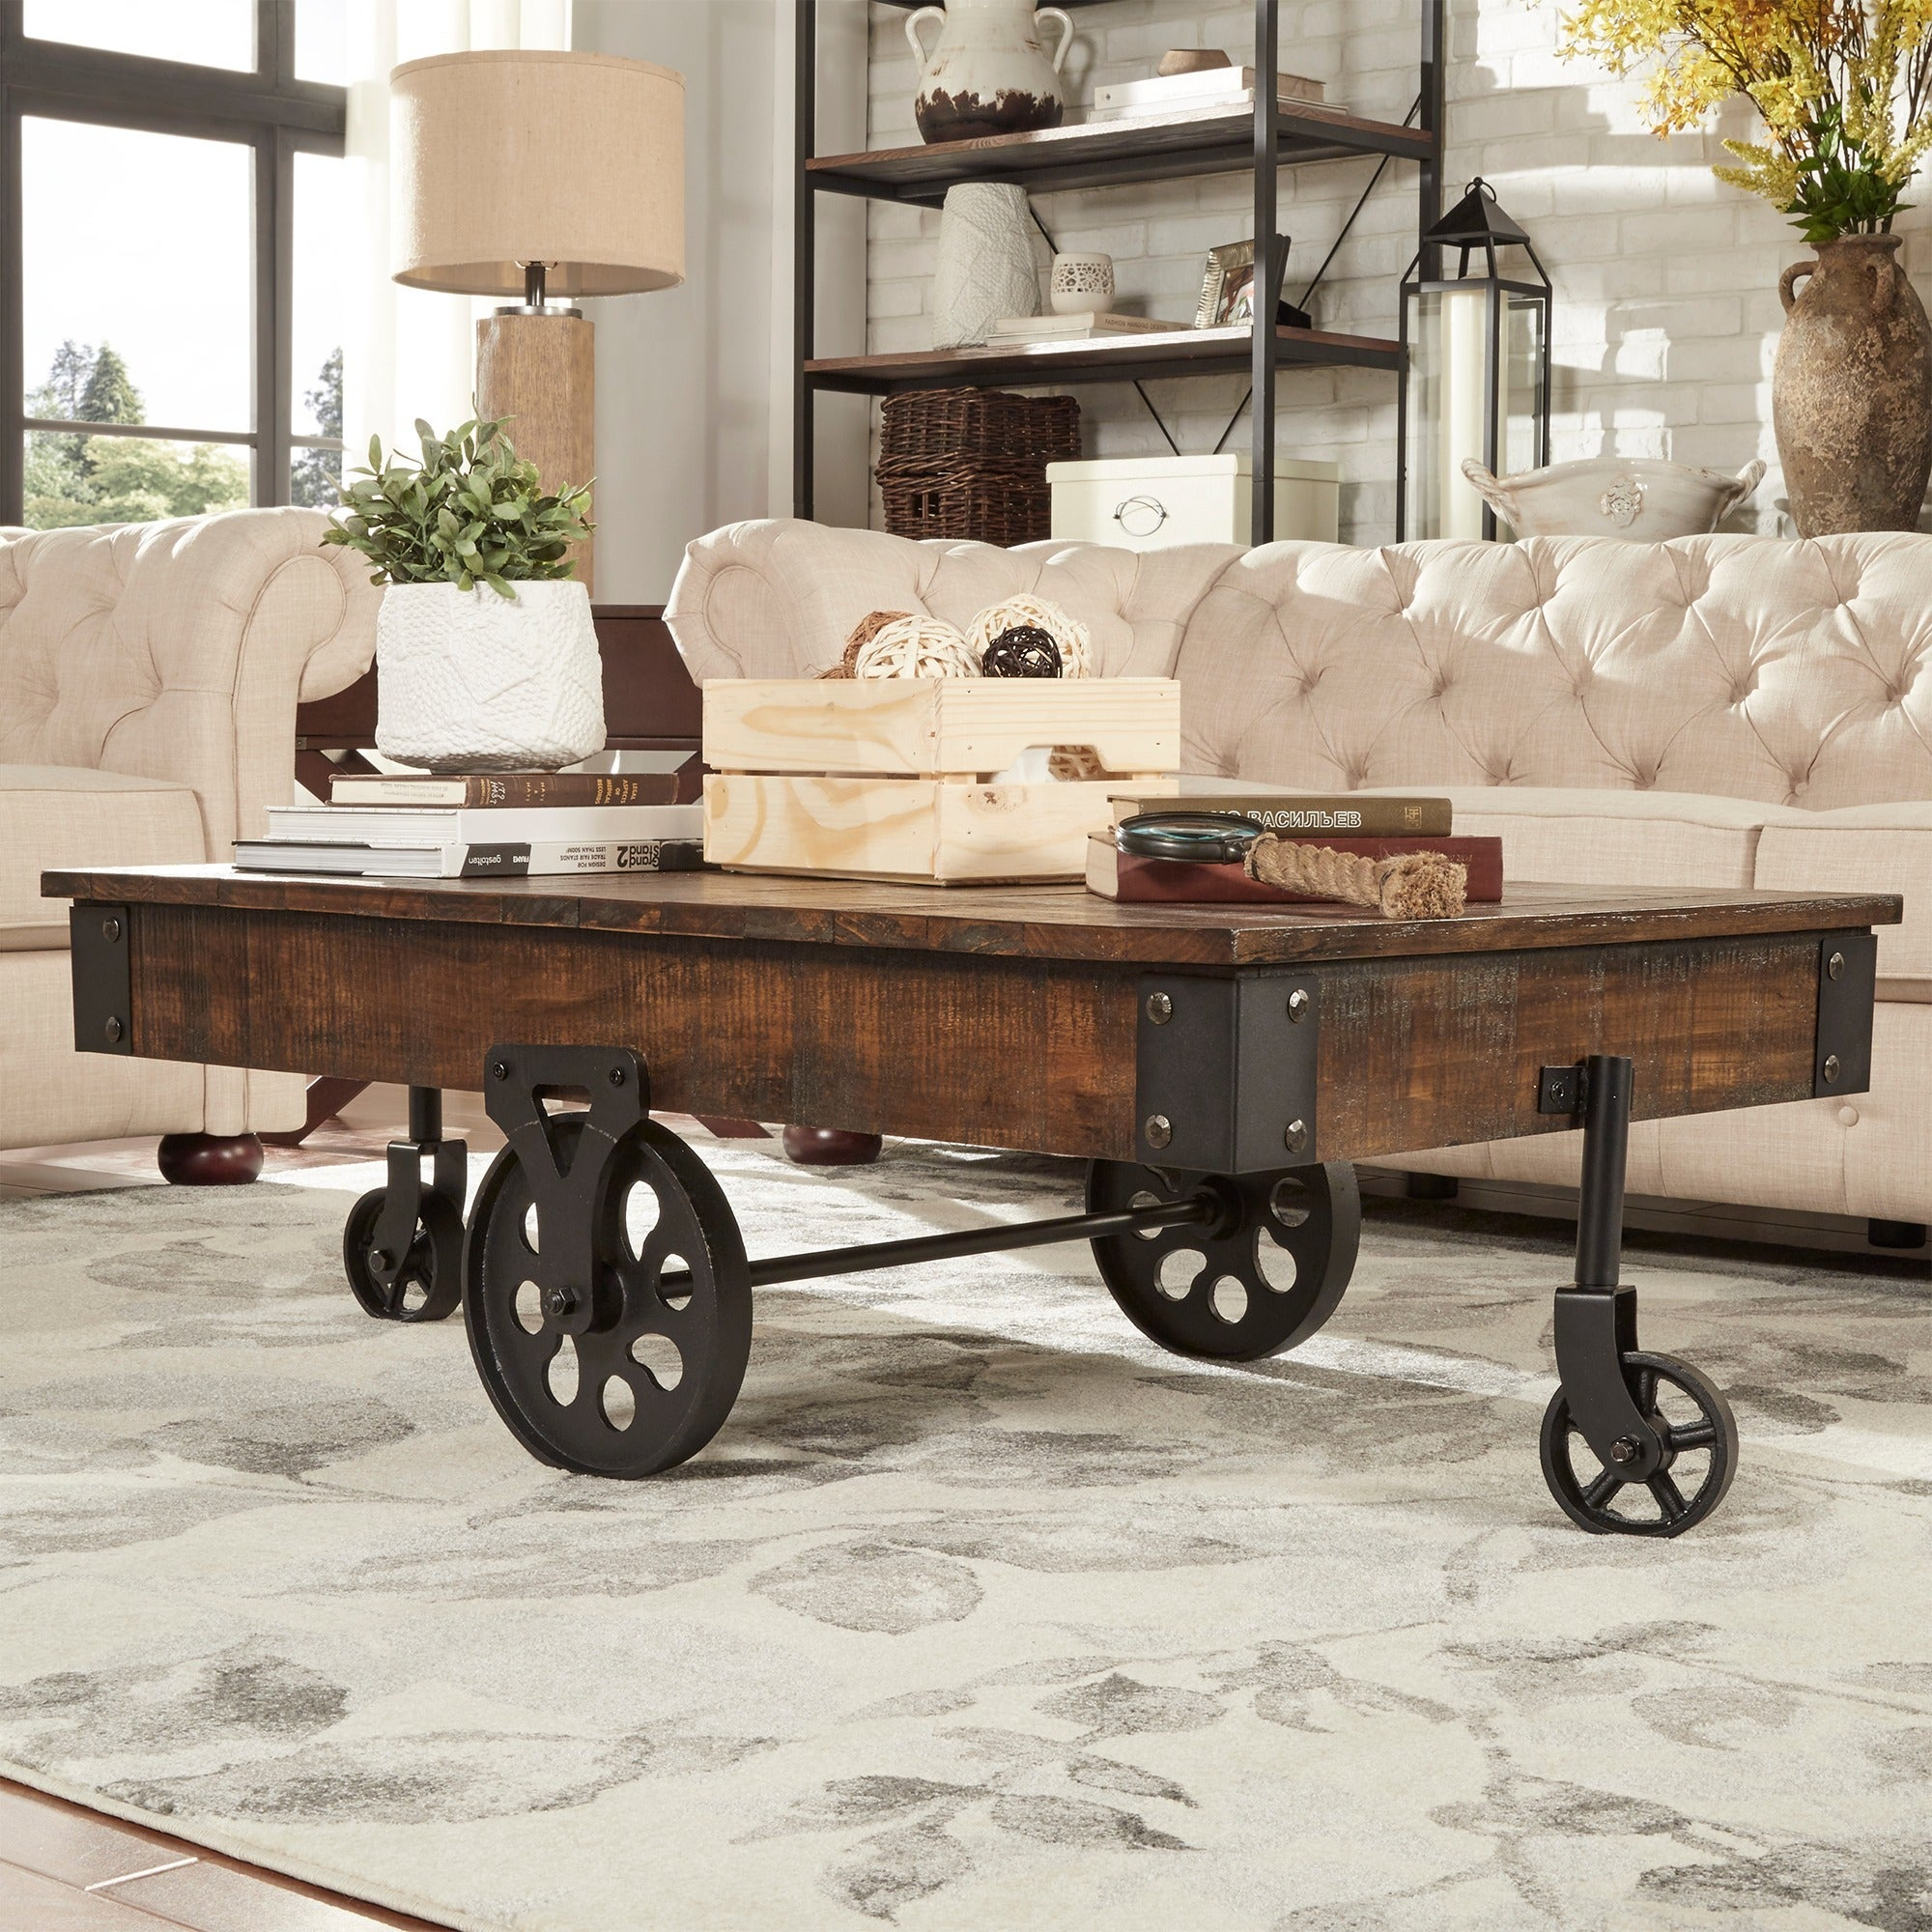 Myra Vintage Modern Rustic 47 Inch Coffee Table By Inspire Q Clic